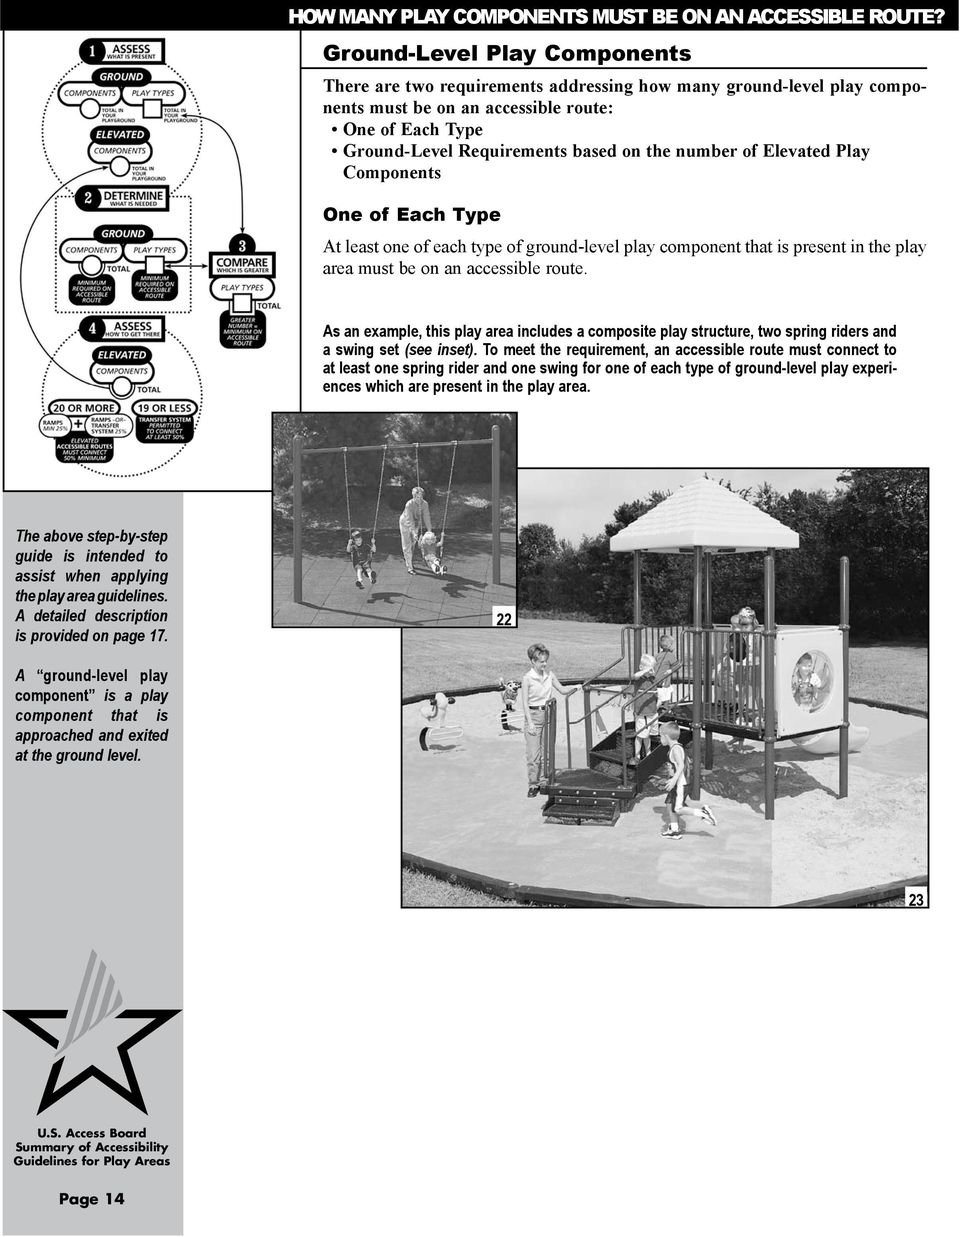 of Elevated Play Components One of Each Type At least one of each type of ground-level play component that is present in the play area must be on an accessible route.